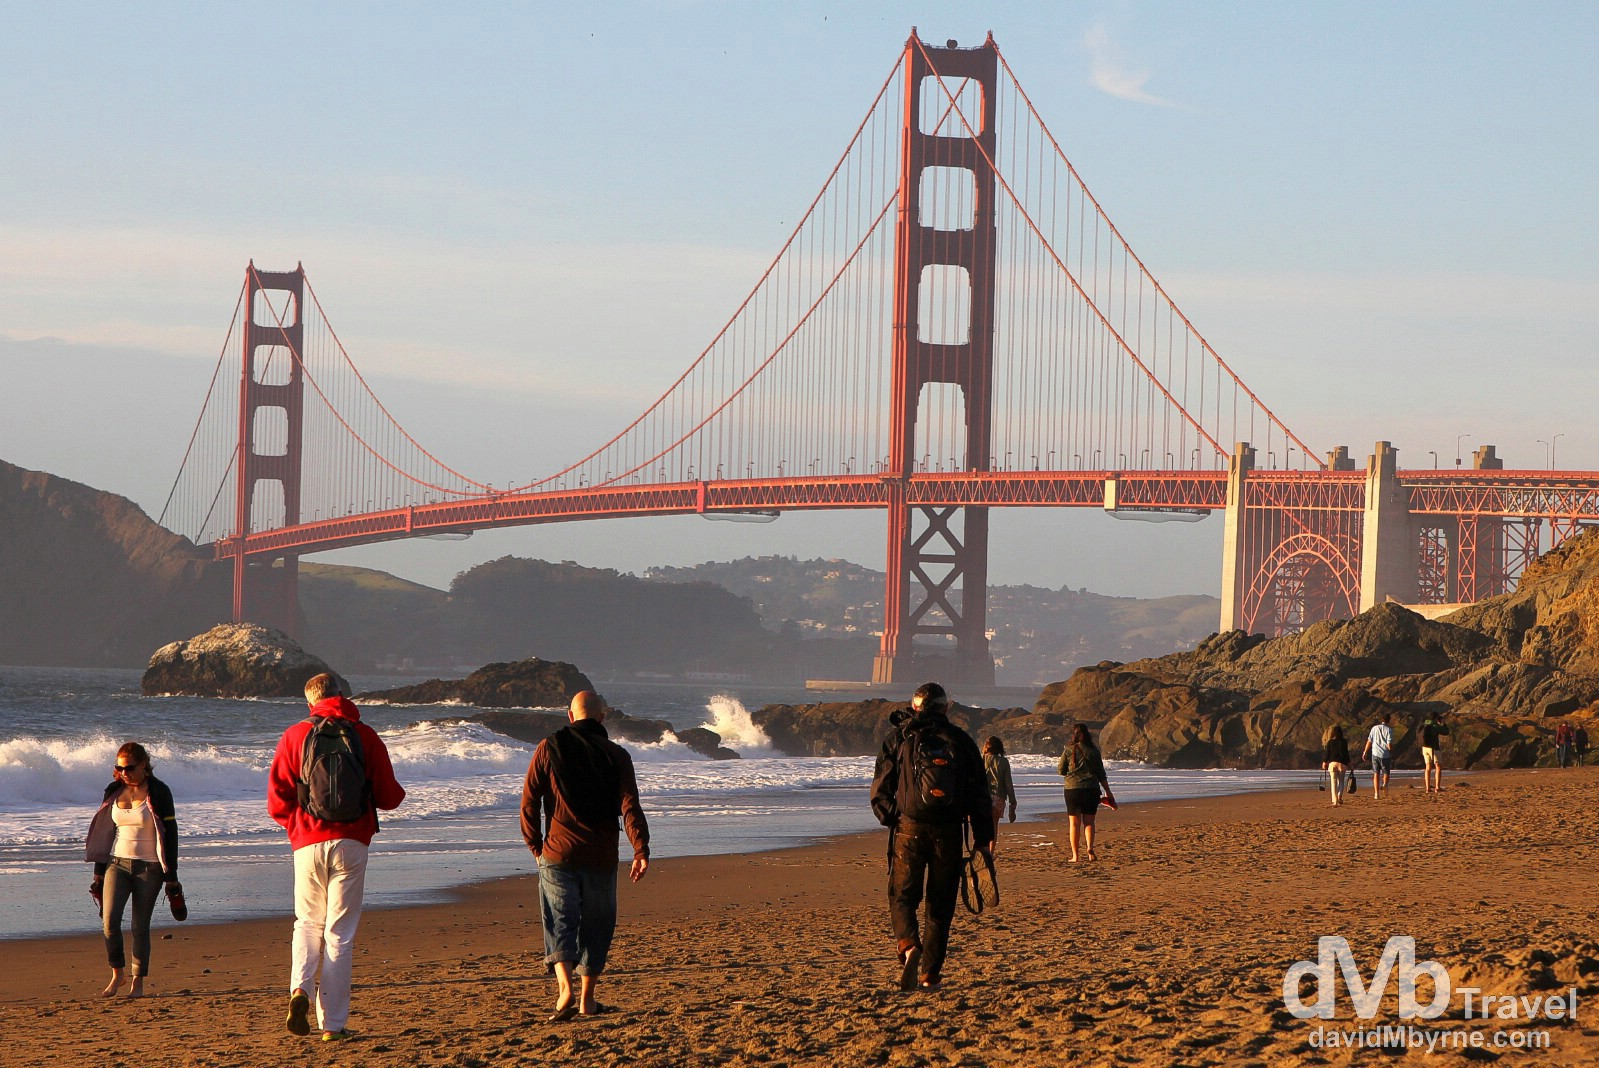 Baker Beach, San Francisco, California, USA. April 10th 2013.